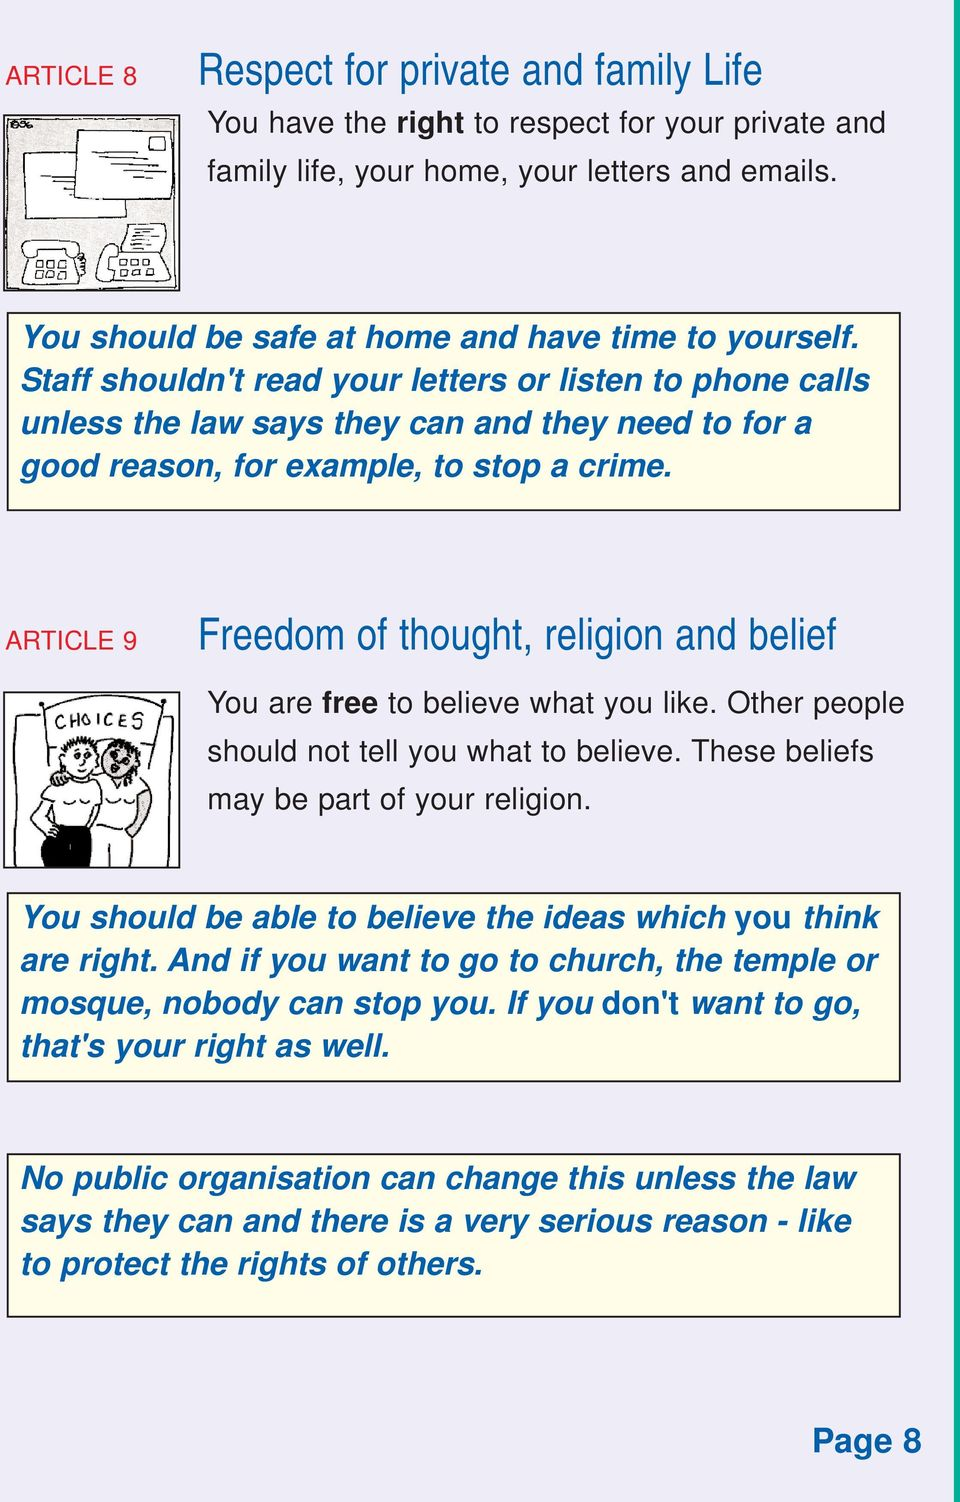 ARTICLE 9 Freedom of thought, religion and belief You are free to believe what you like. Other people should not tell you what to believe. These beliefs may be part of your religion.